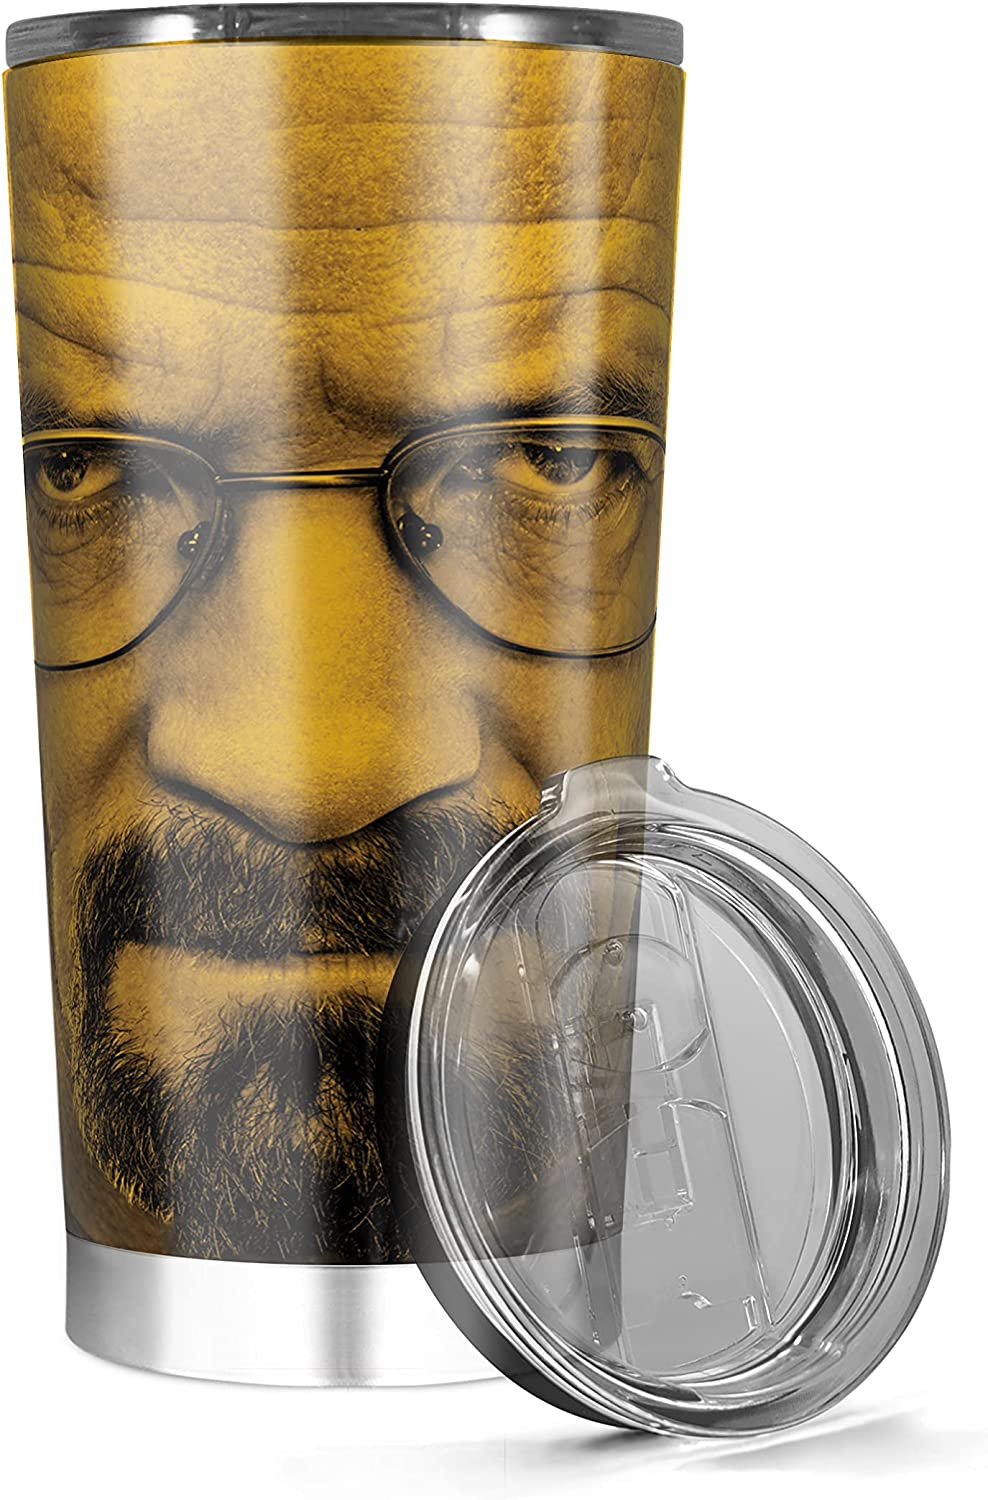 Tumbler Stainless specialty shop Steel Insulated Breaking Bad Brya High material Office Glass